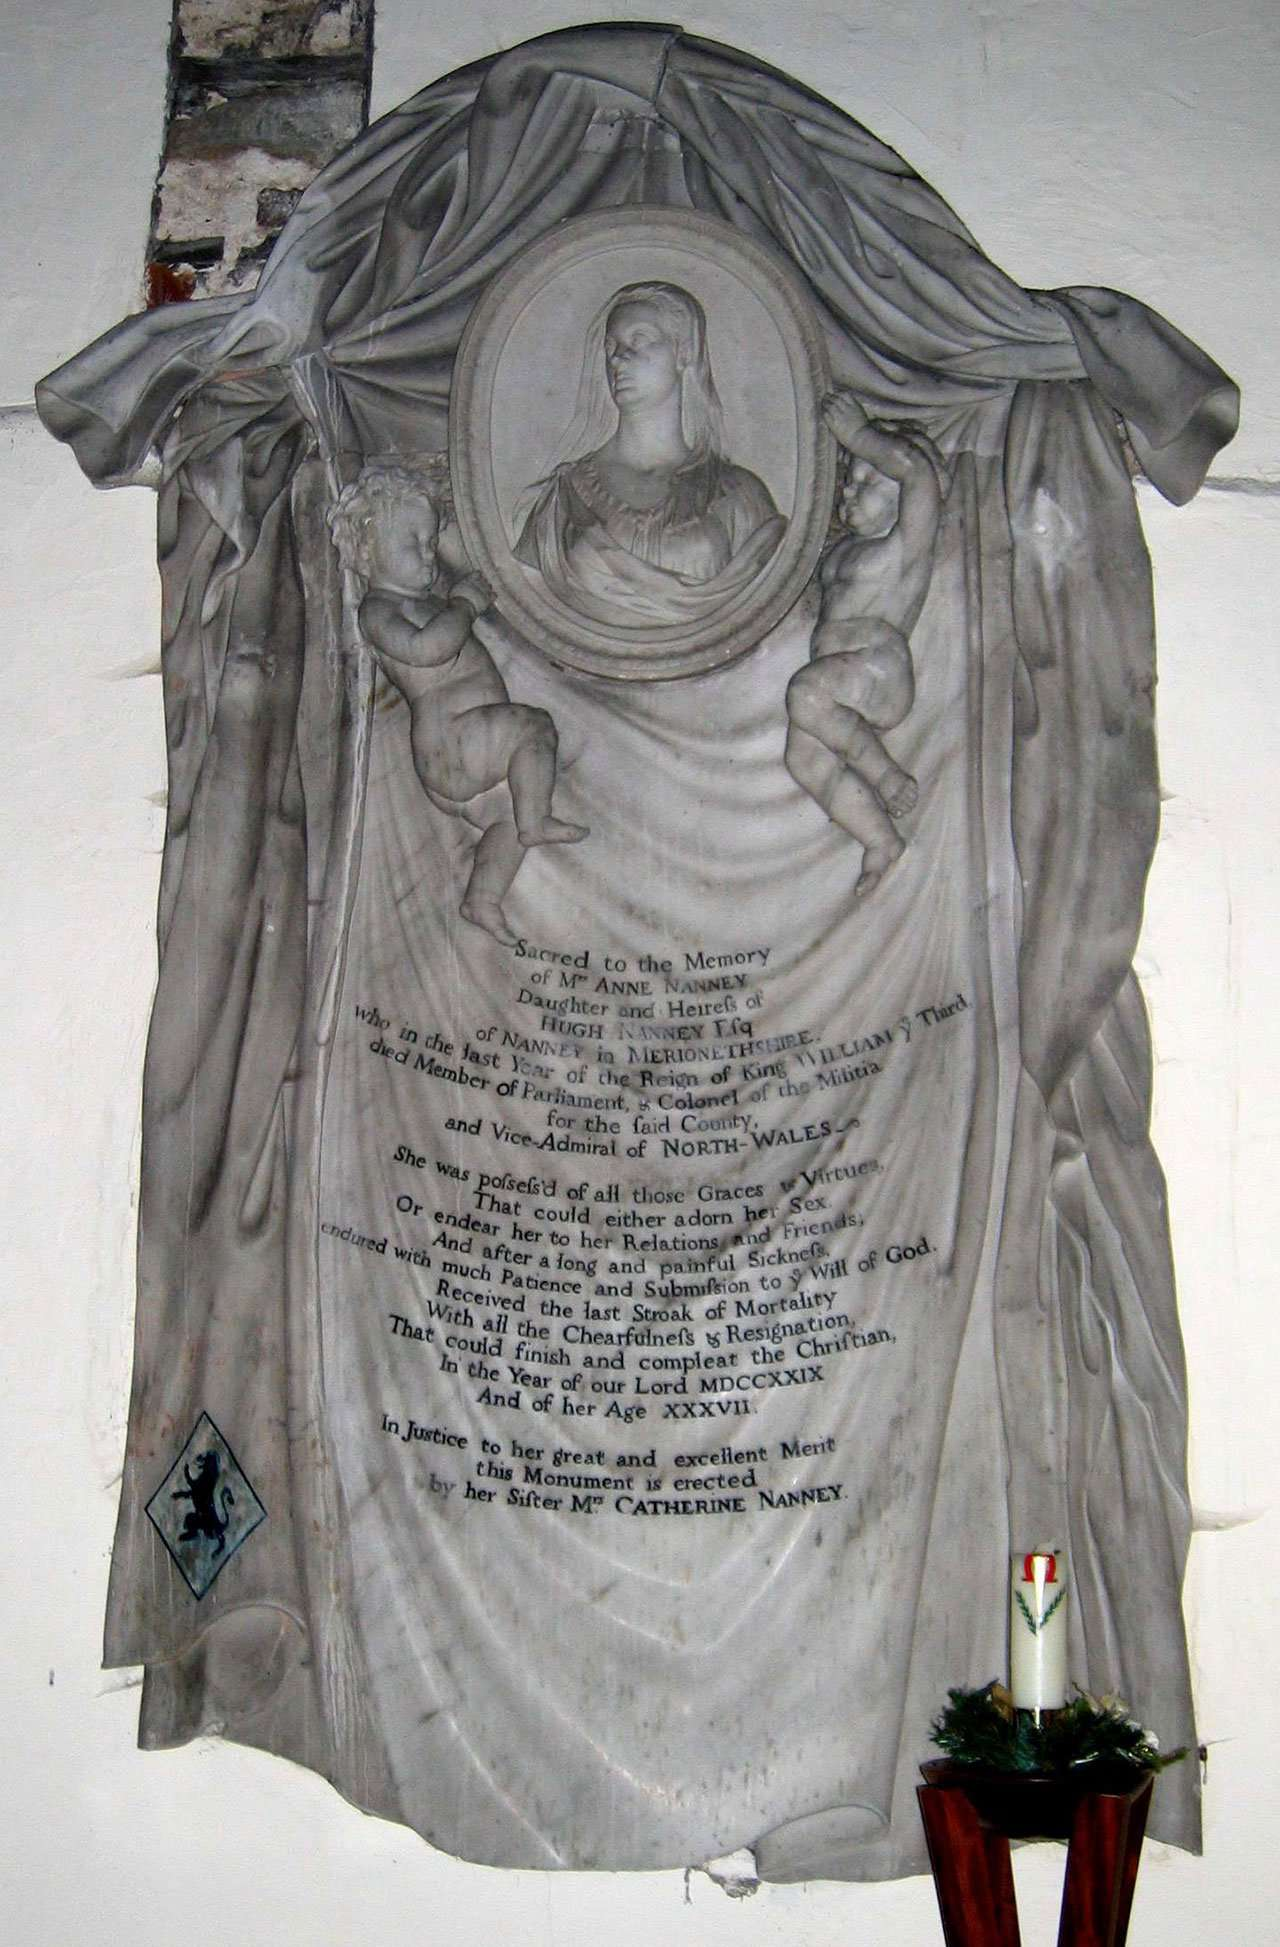 Anne Nanney Memorial in Llanfachreth Church - Photo Courtesy of David Brown